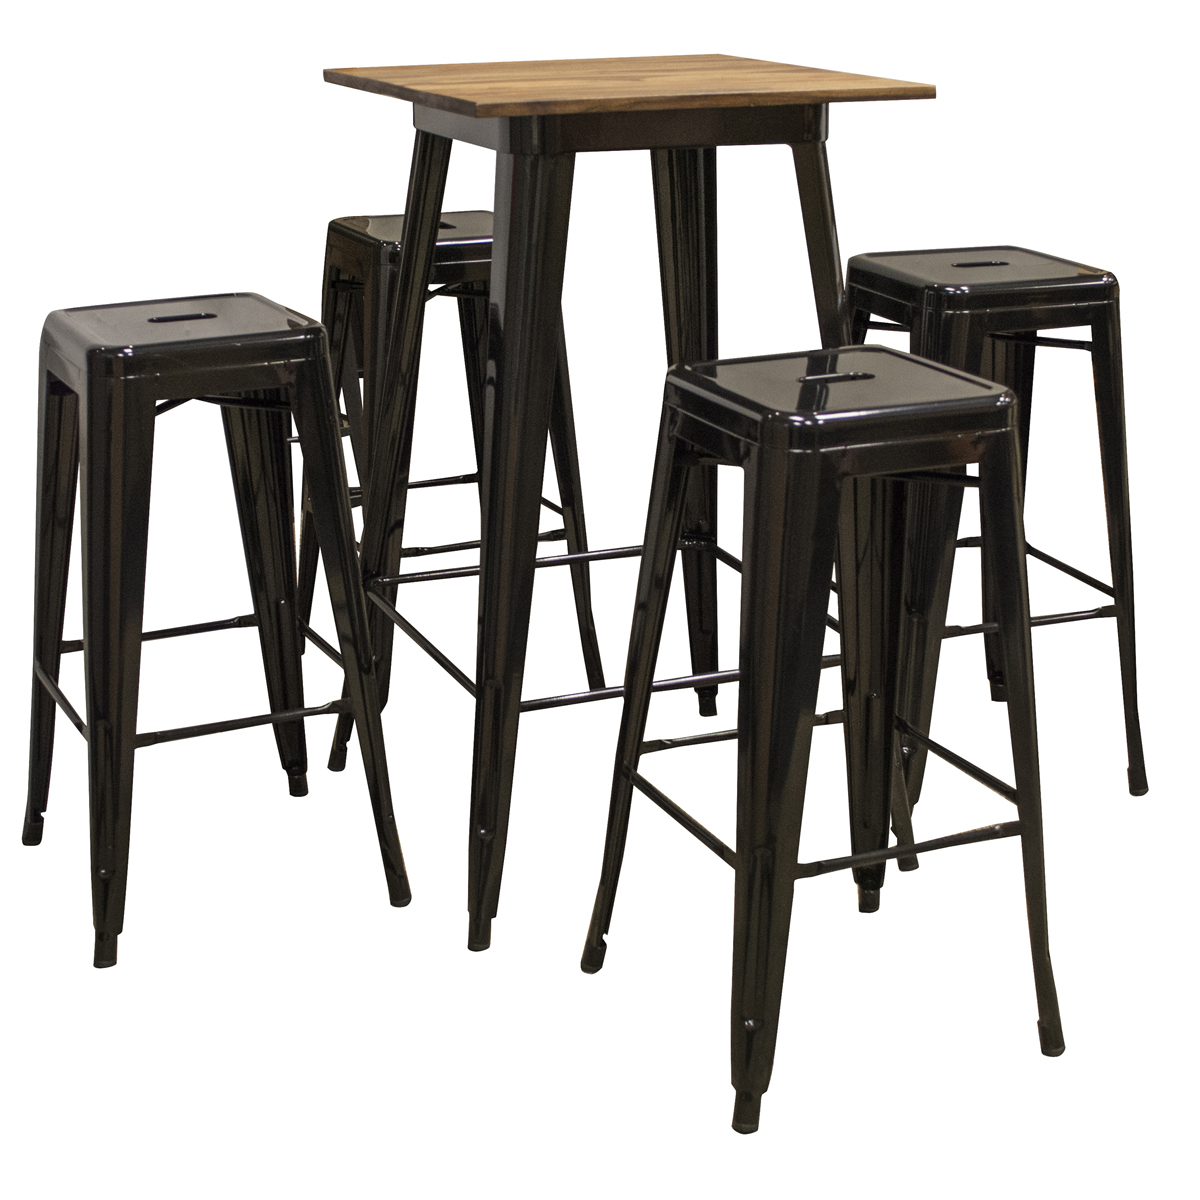 5 Piece Pub Table Set with Rosewood Top Table and Metal Bar Stools, Seats 4